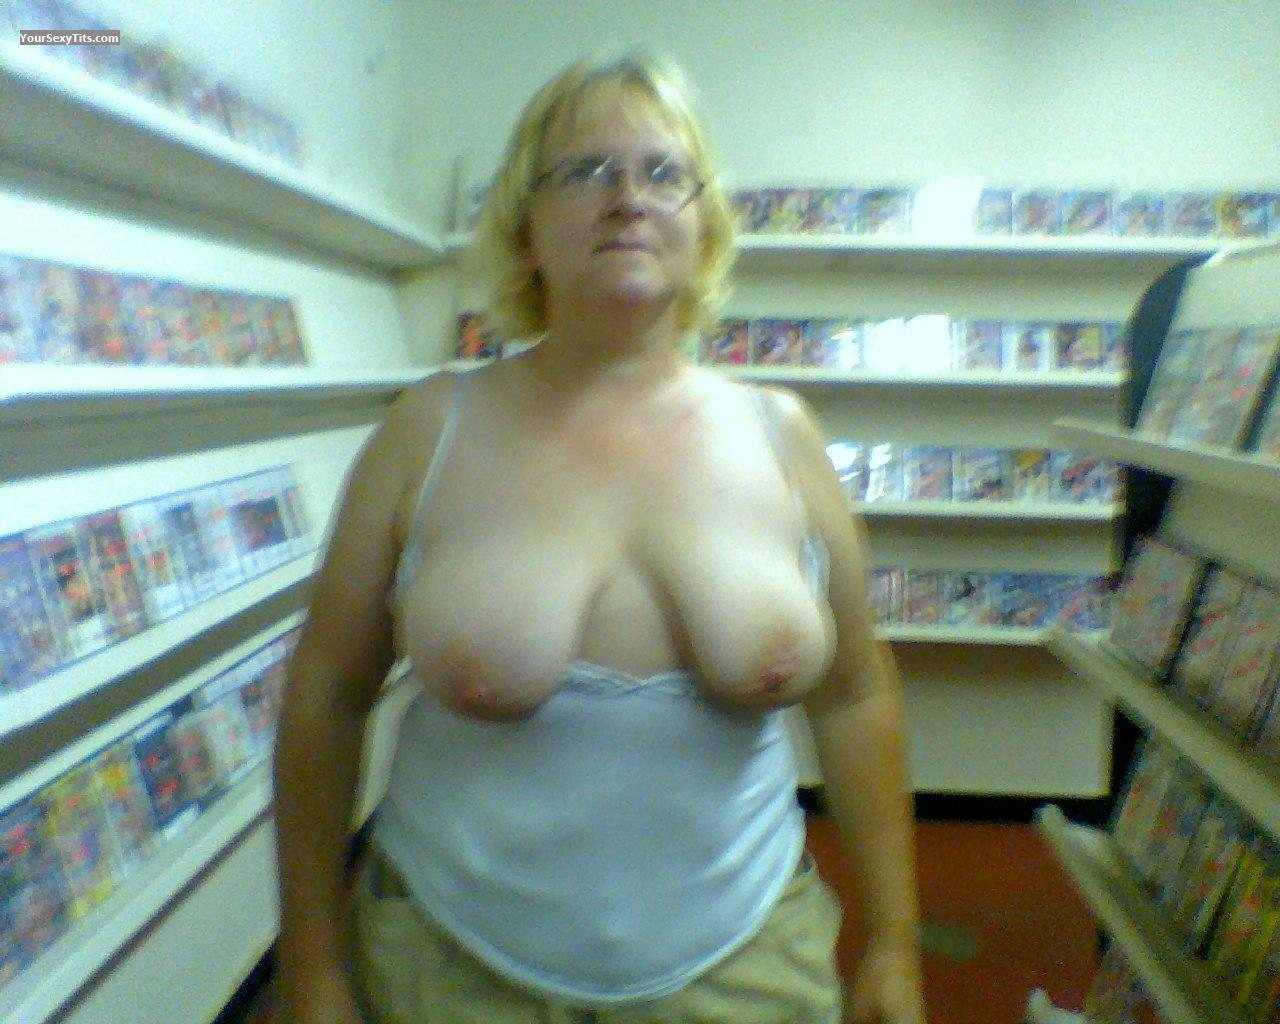 Tit Flash: Medium Tits - Topless Saggysaggy from United States